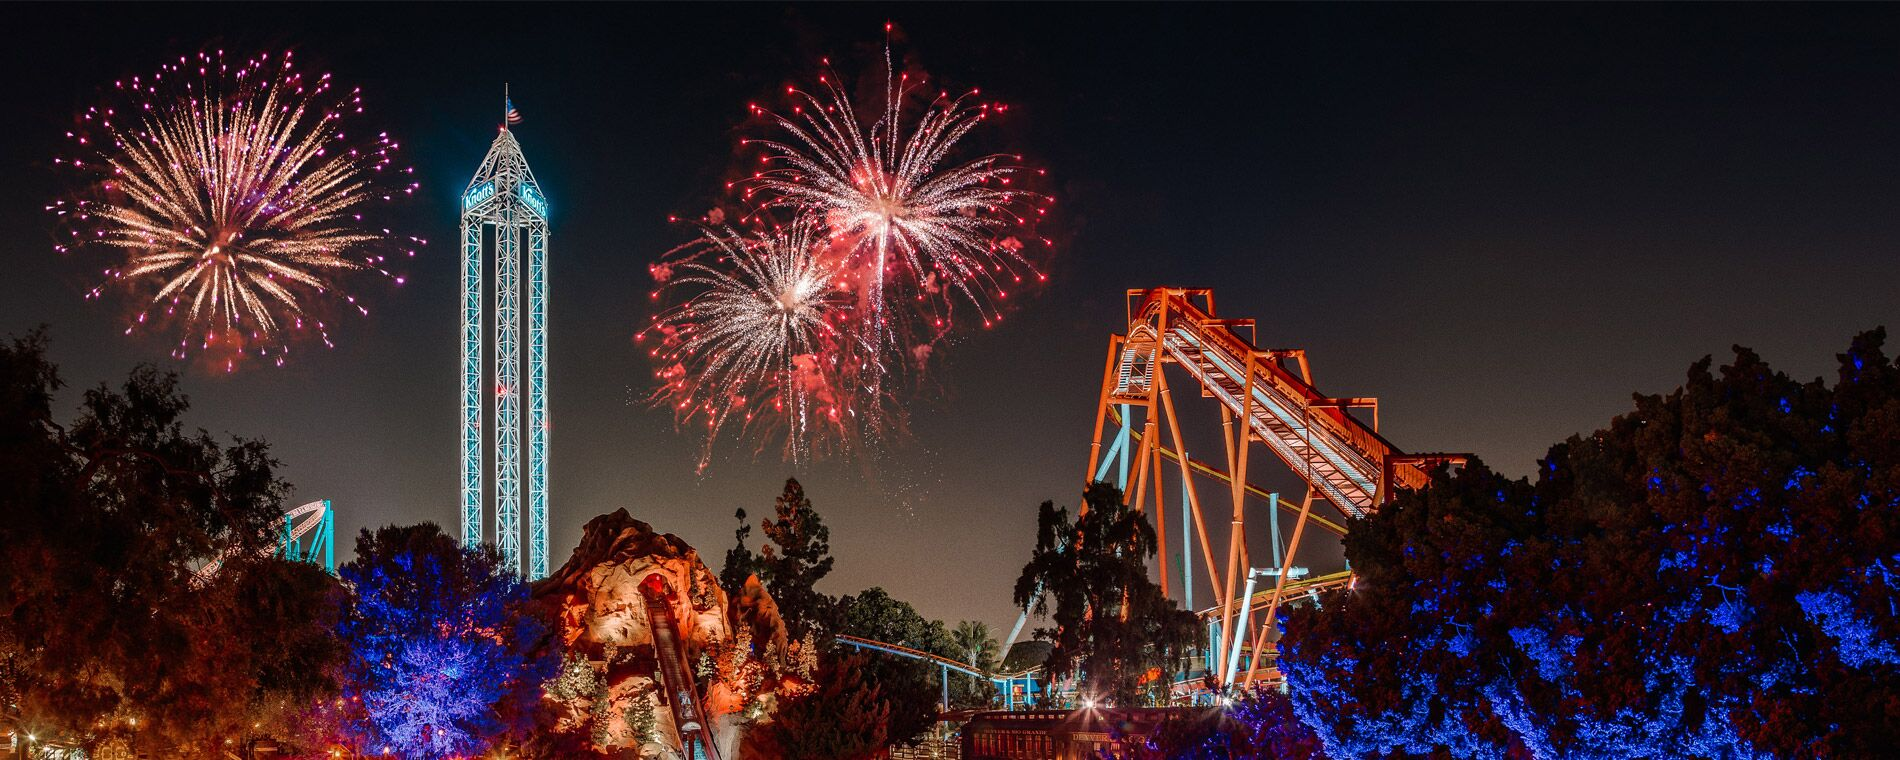 New Year's Eve Fireworks and Party at Knott's Berry Farm